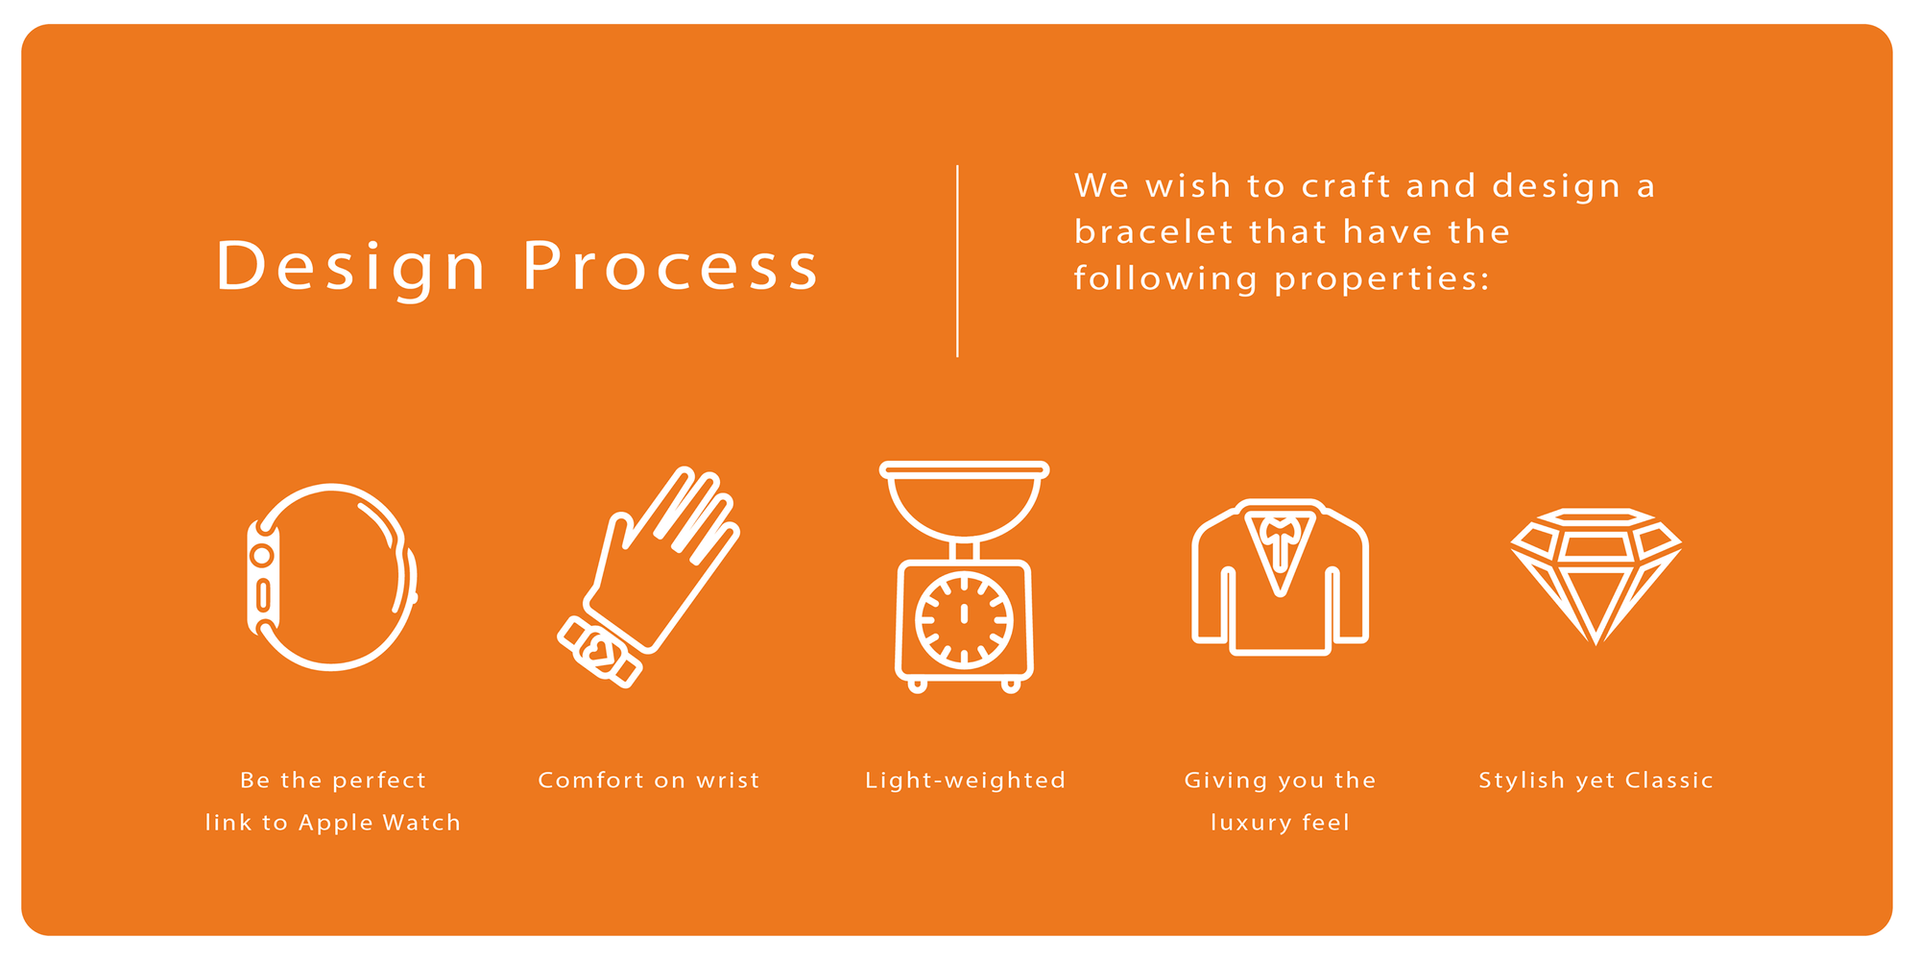 The Design process and Customer satisfaction is our top priority